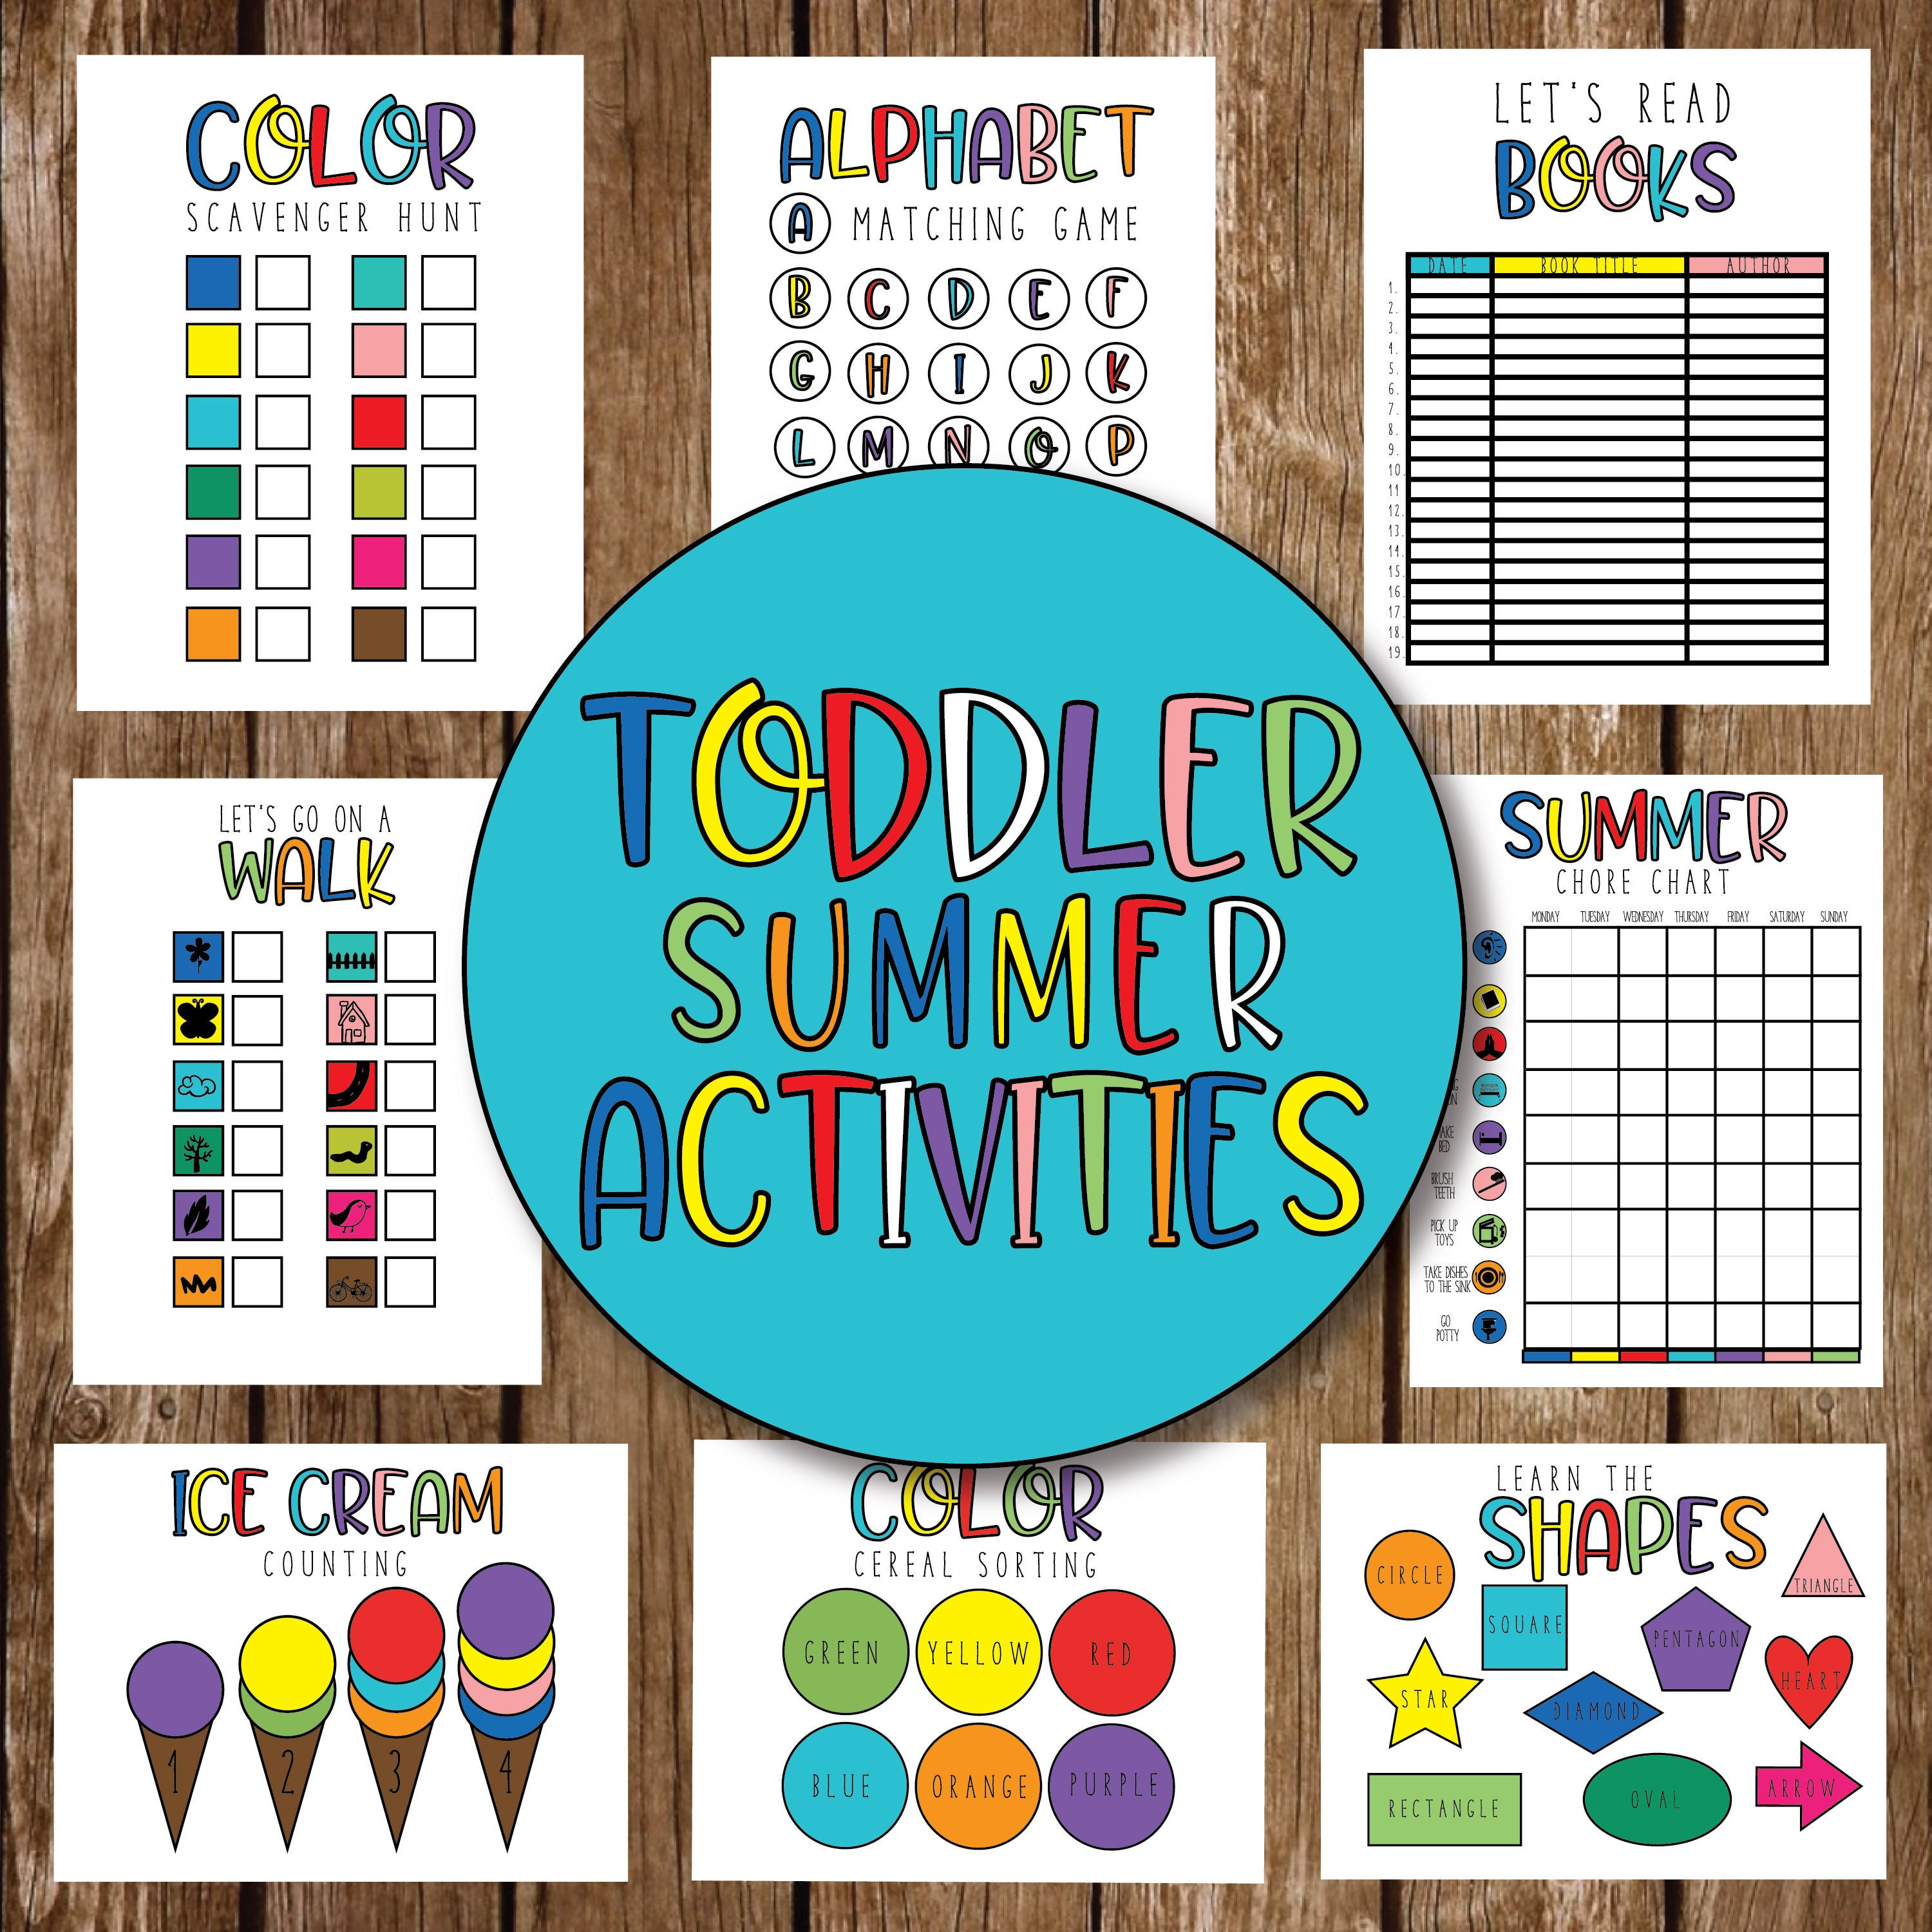 TODDLER SUMMER ACTIVITIES || Counting, Letters, Shapes, Colors, Nature  Walk, Chore Chart, Read List